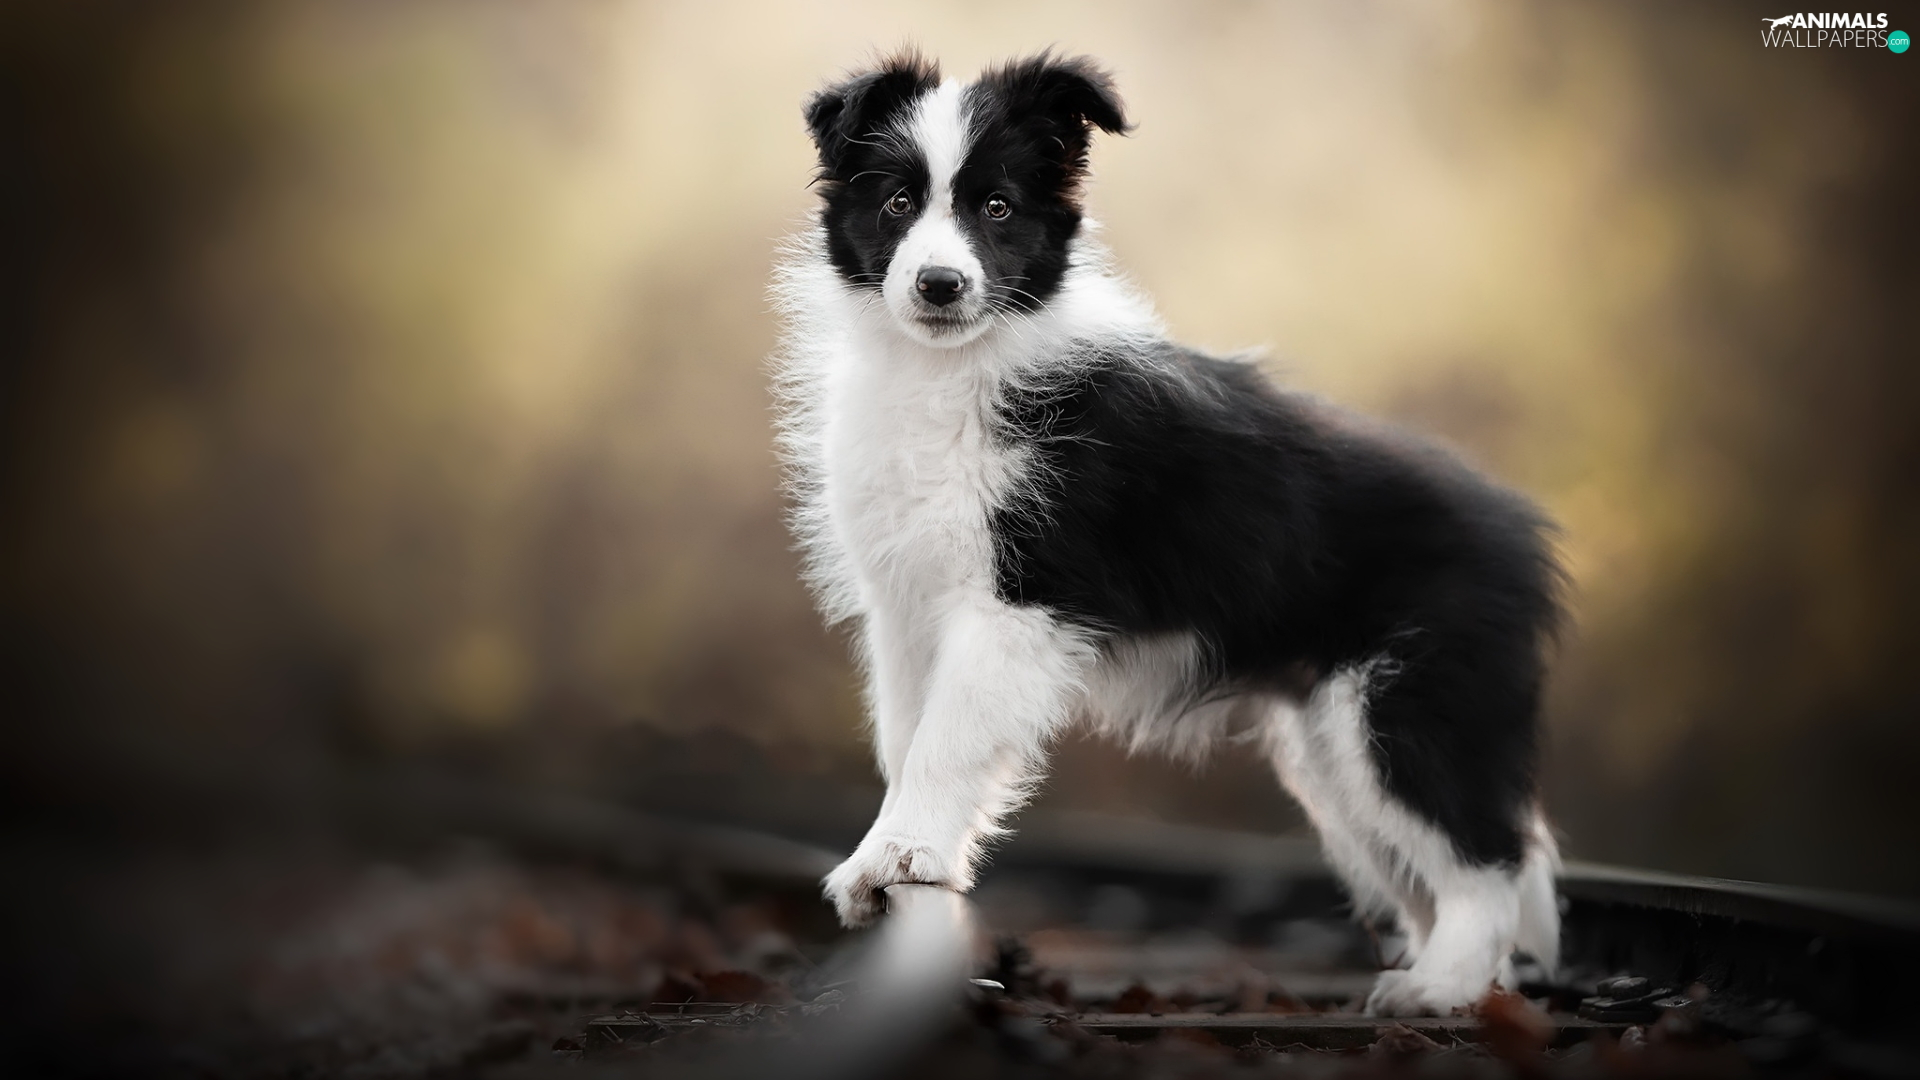 dog, White and Black, Border Collie, Puppy